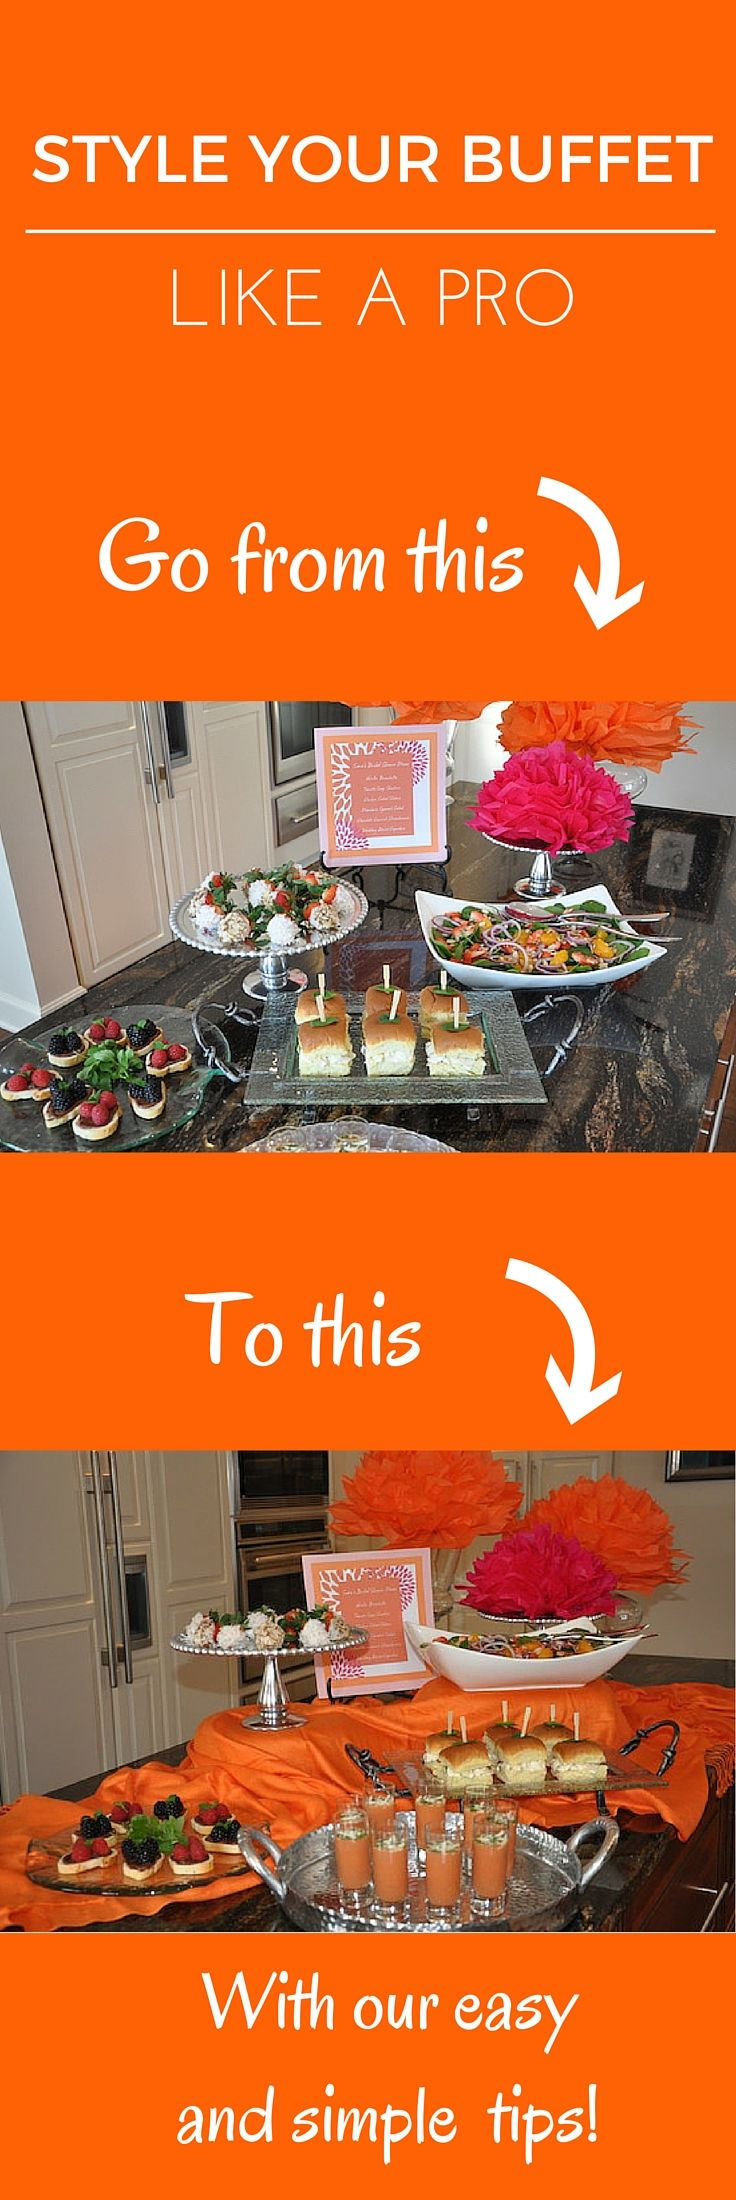 Take your buffet to the next level! Follow these simple steps to create multiple levels and add pops of color to your next party.